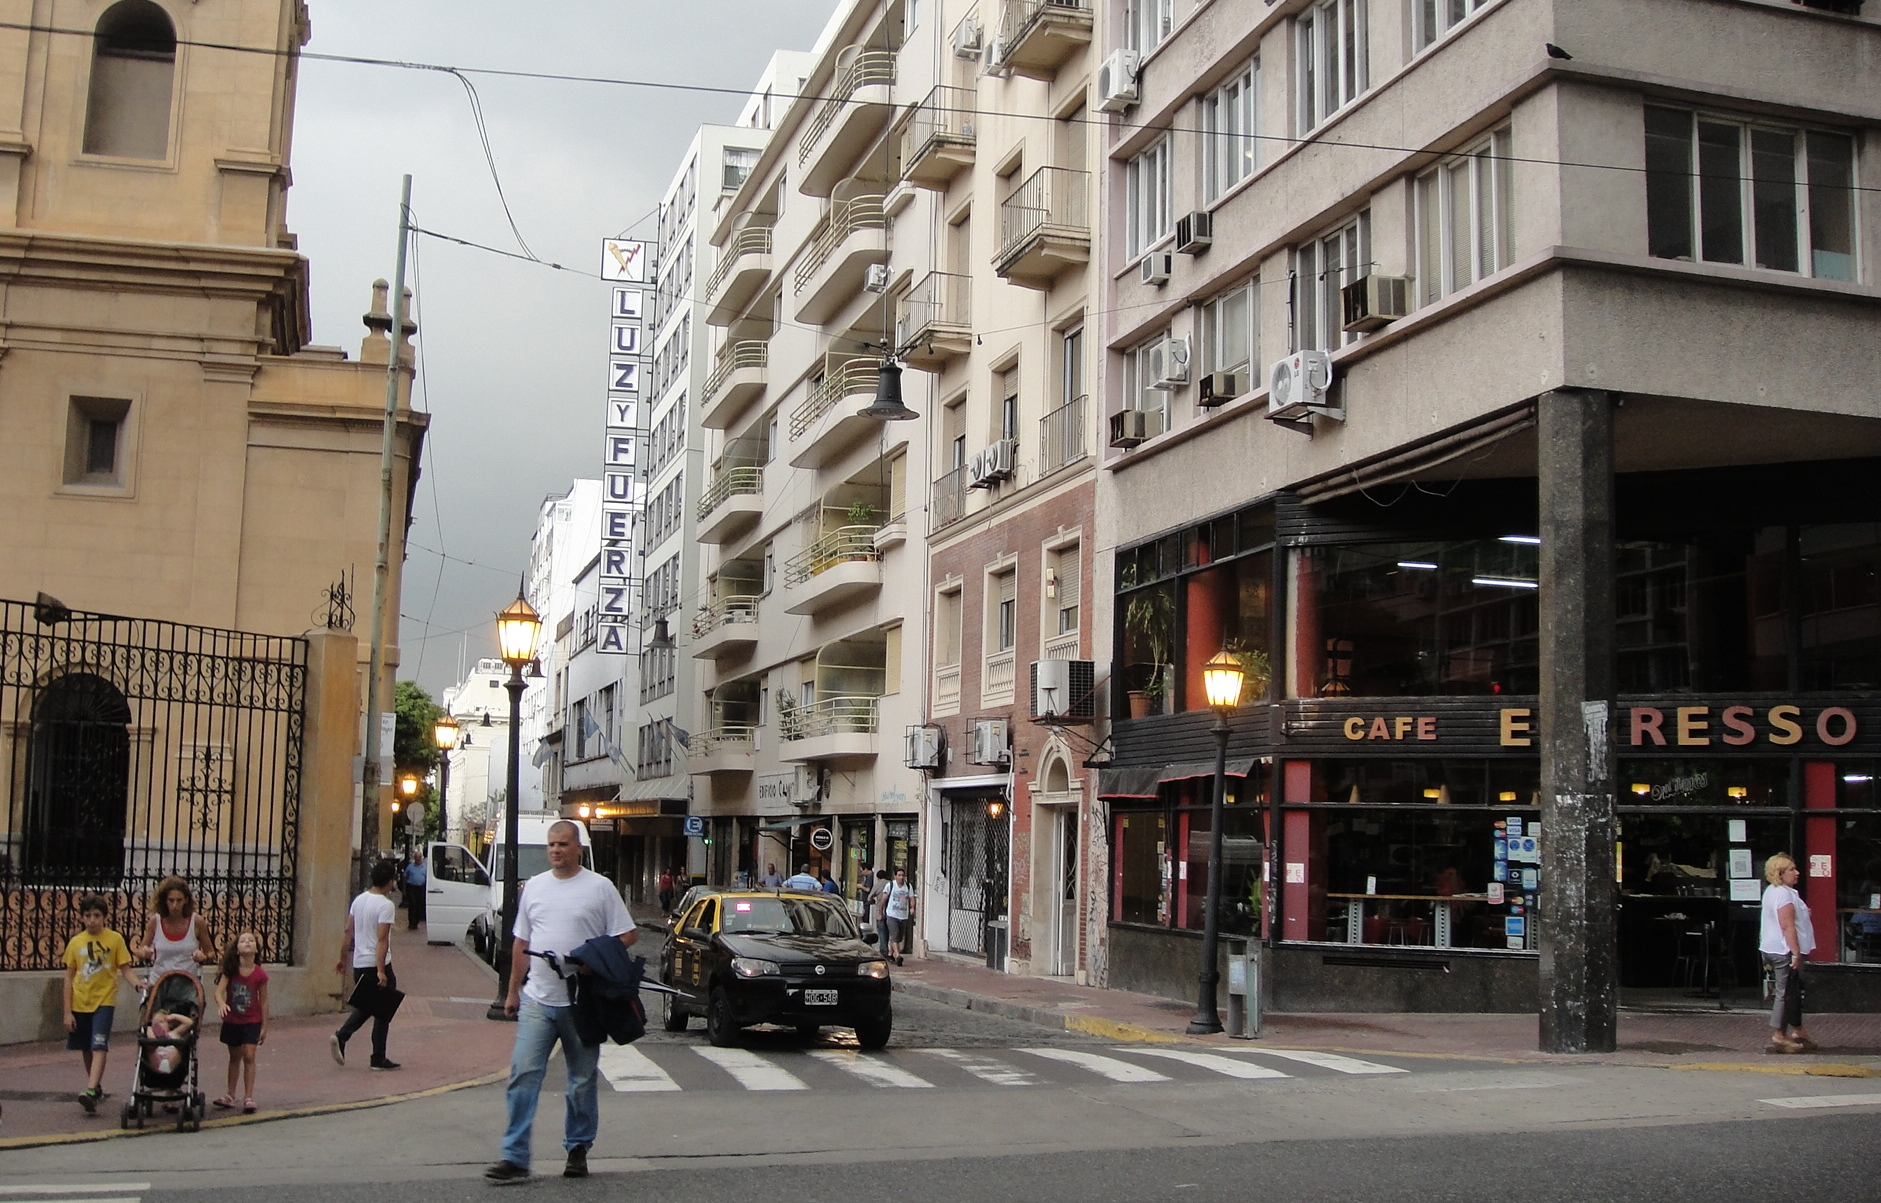 Further exploration of the streets of Buenos Aires